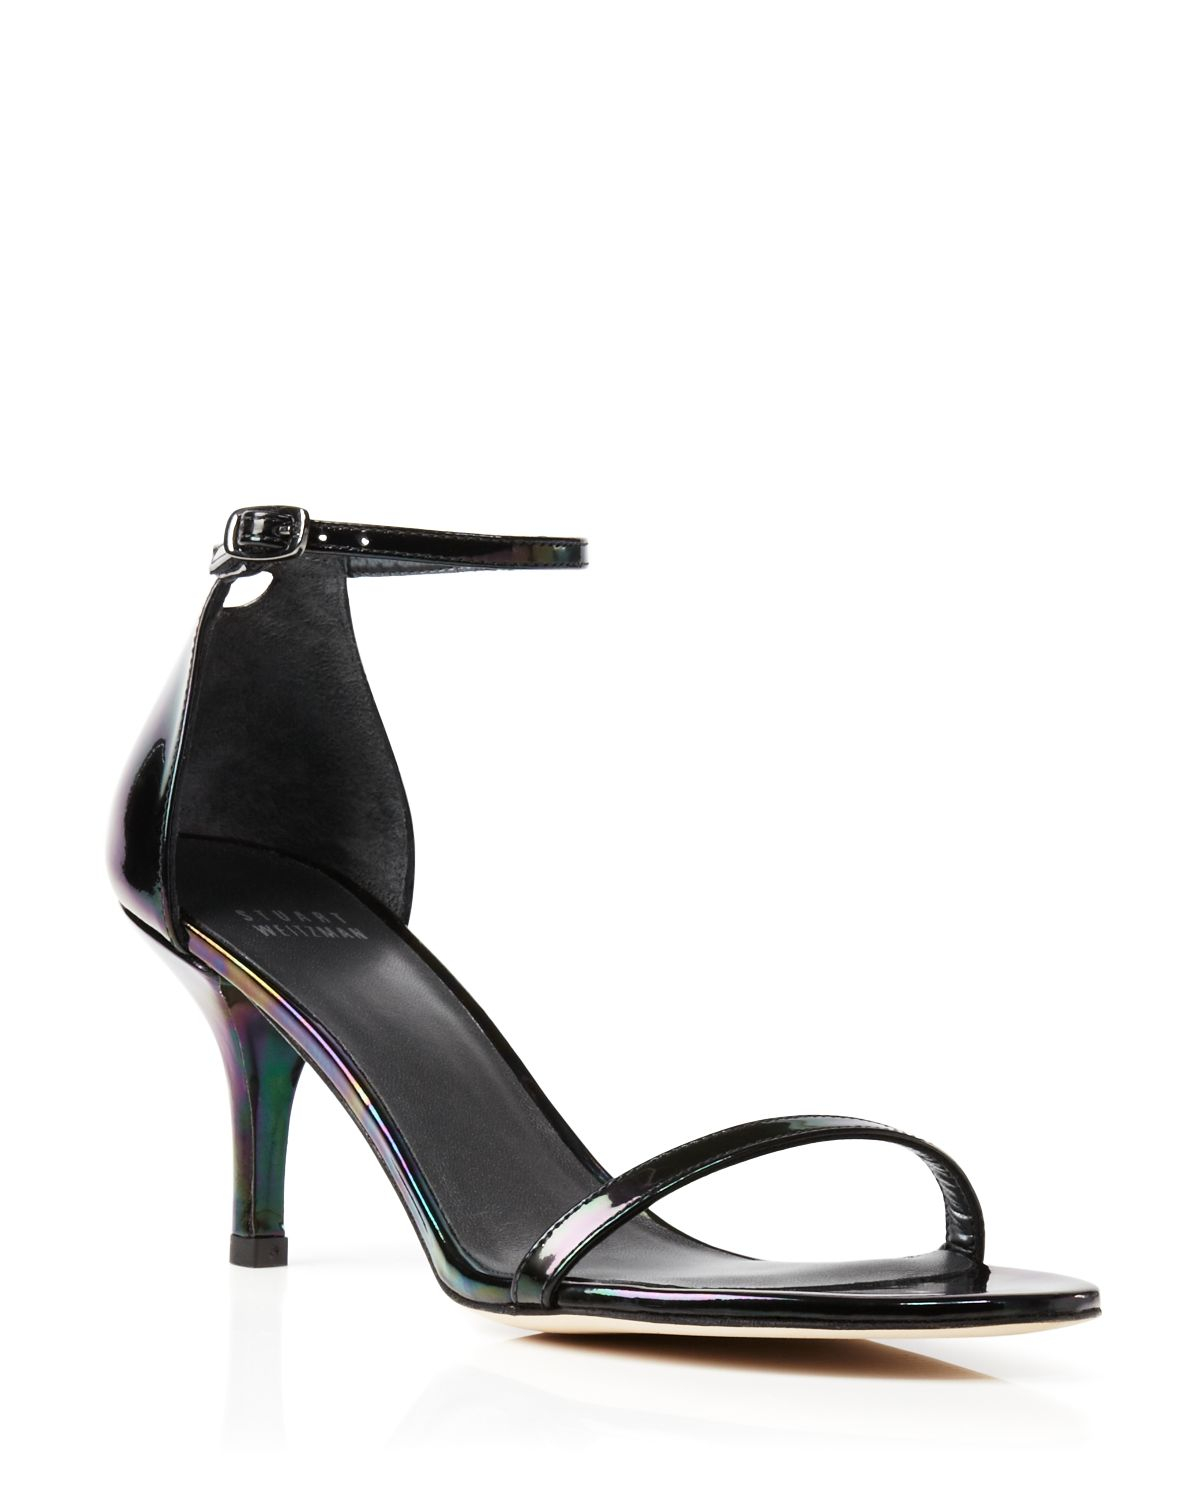 5f8e1f2b318 Lyst - Stuart Weitzman Ankle Strap Sandals - Naked Mid Heel in Black